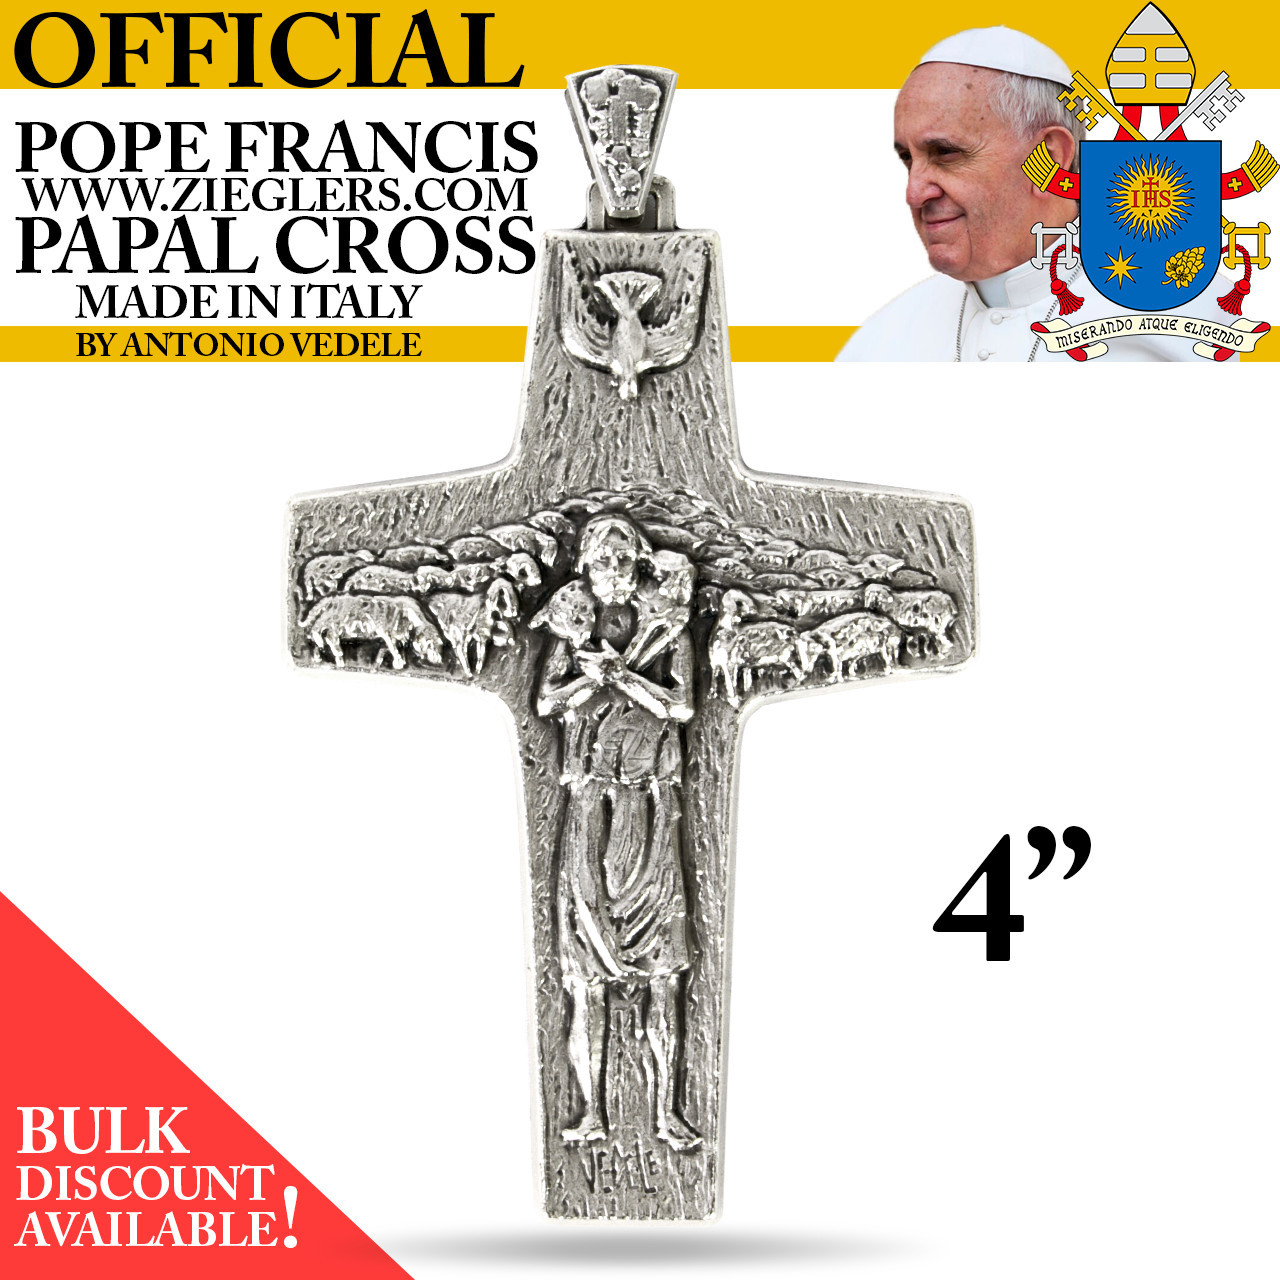 Official Pope Francis Pectoral Papal Cross | 4"